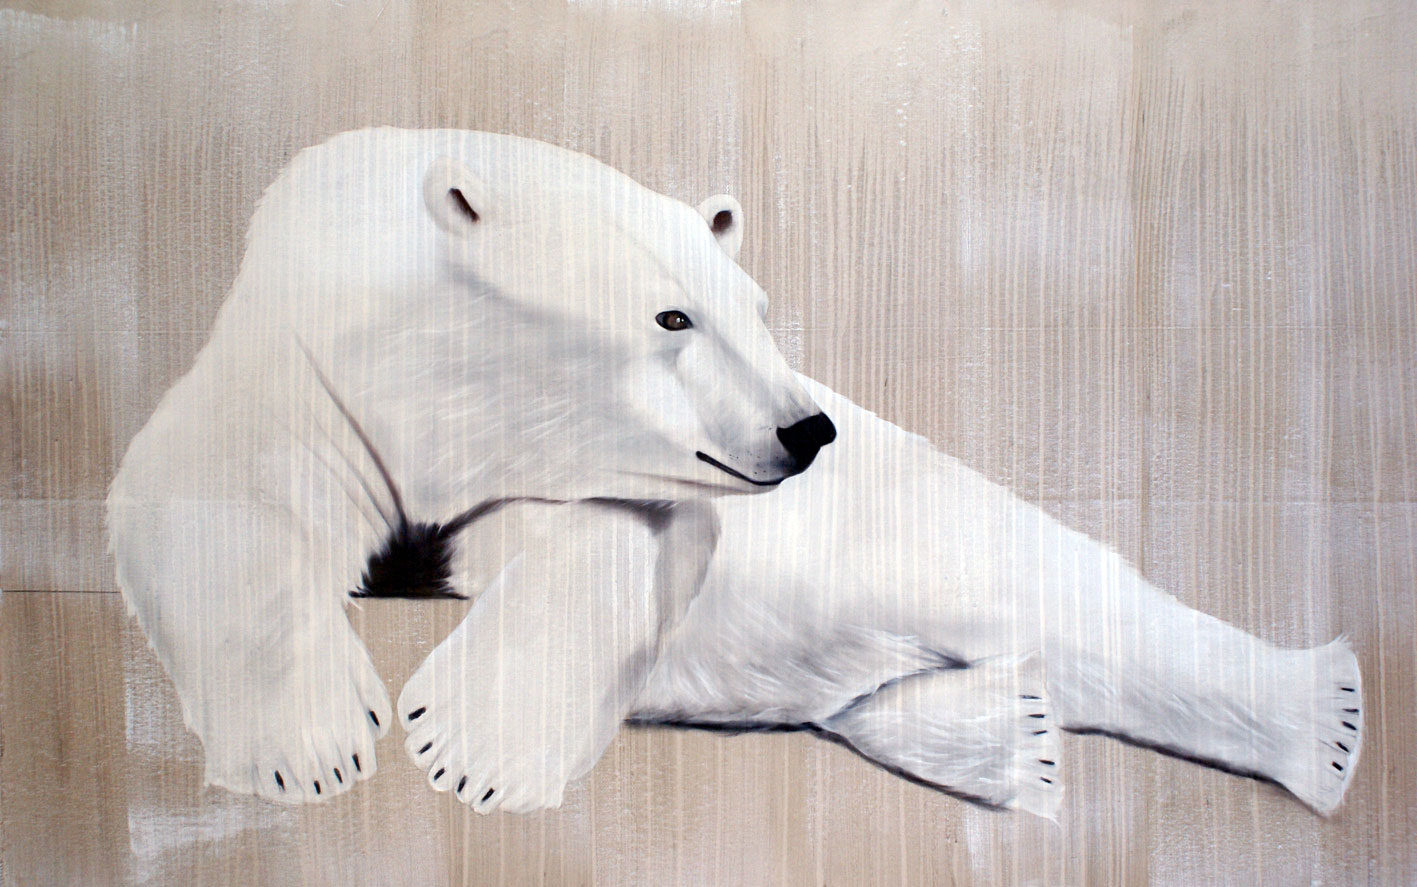 RELAXING POLAR BEAR 1 divers Thierry Bisch painter animals painting art decoration hotel design interior luxury nature biodiversity conservation